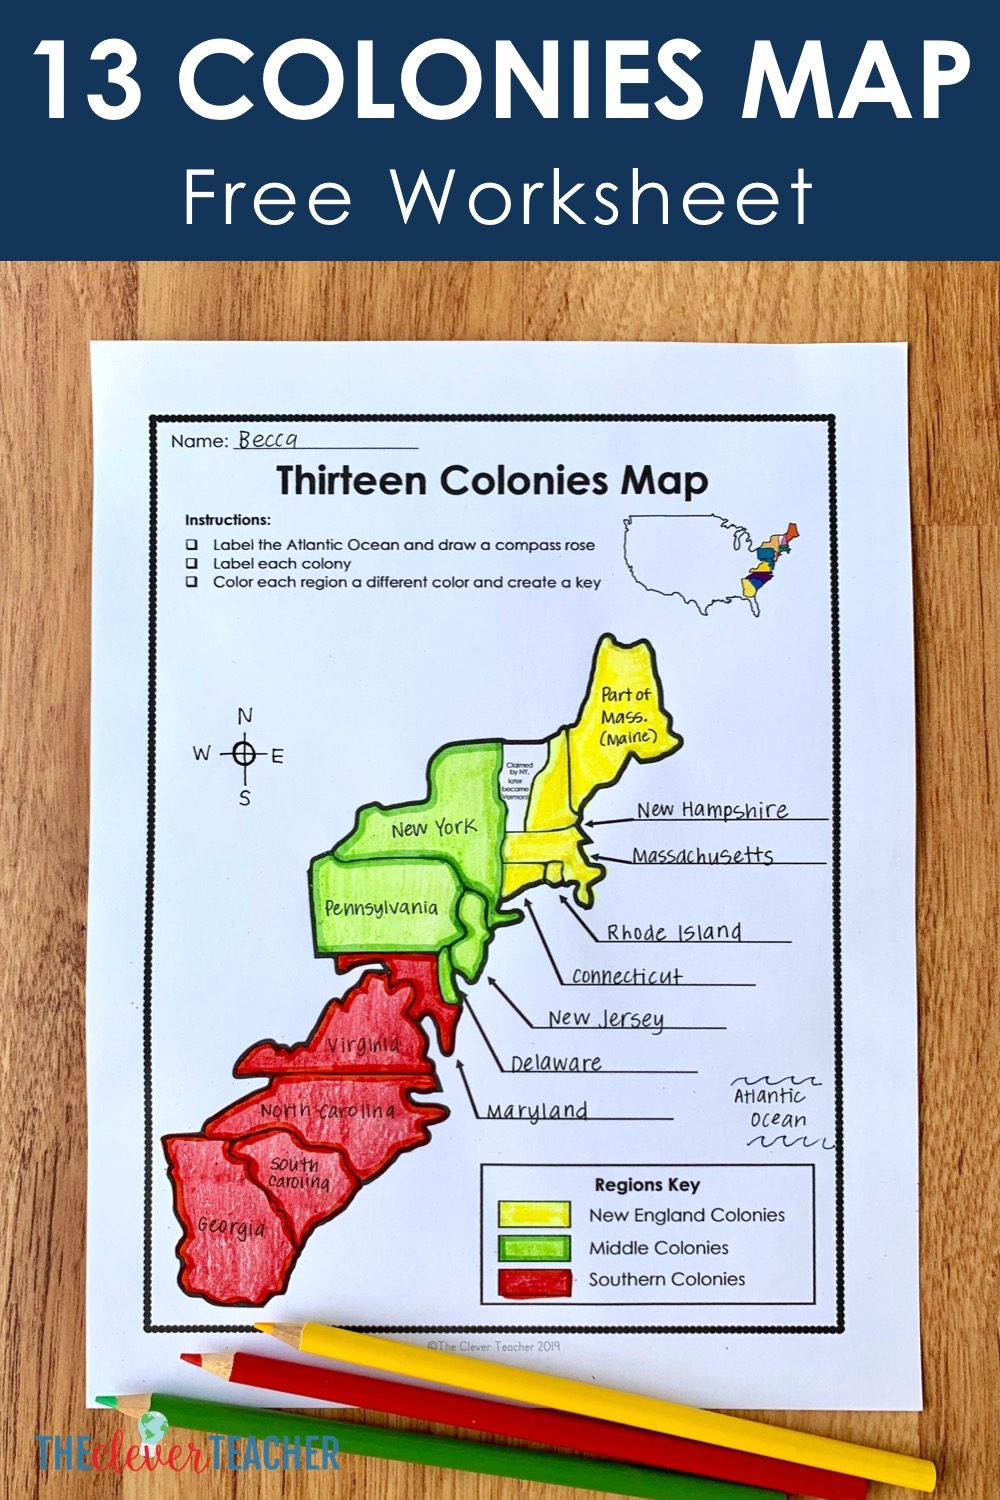 Free 13 colonies map worksheet and lesson (New England, Middle, and Southern). Perfect resource for 5th, 6th, 7th, and 8th grades